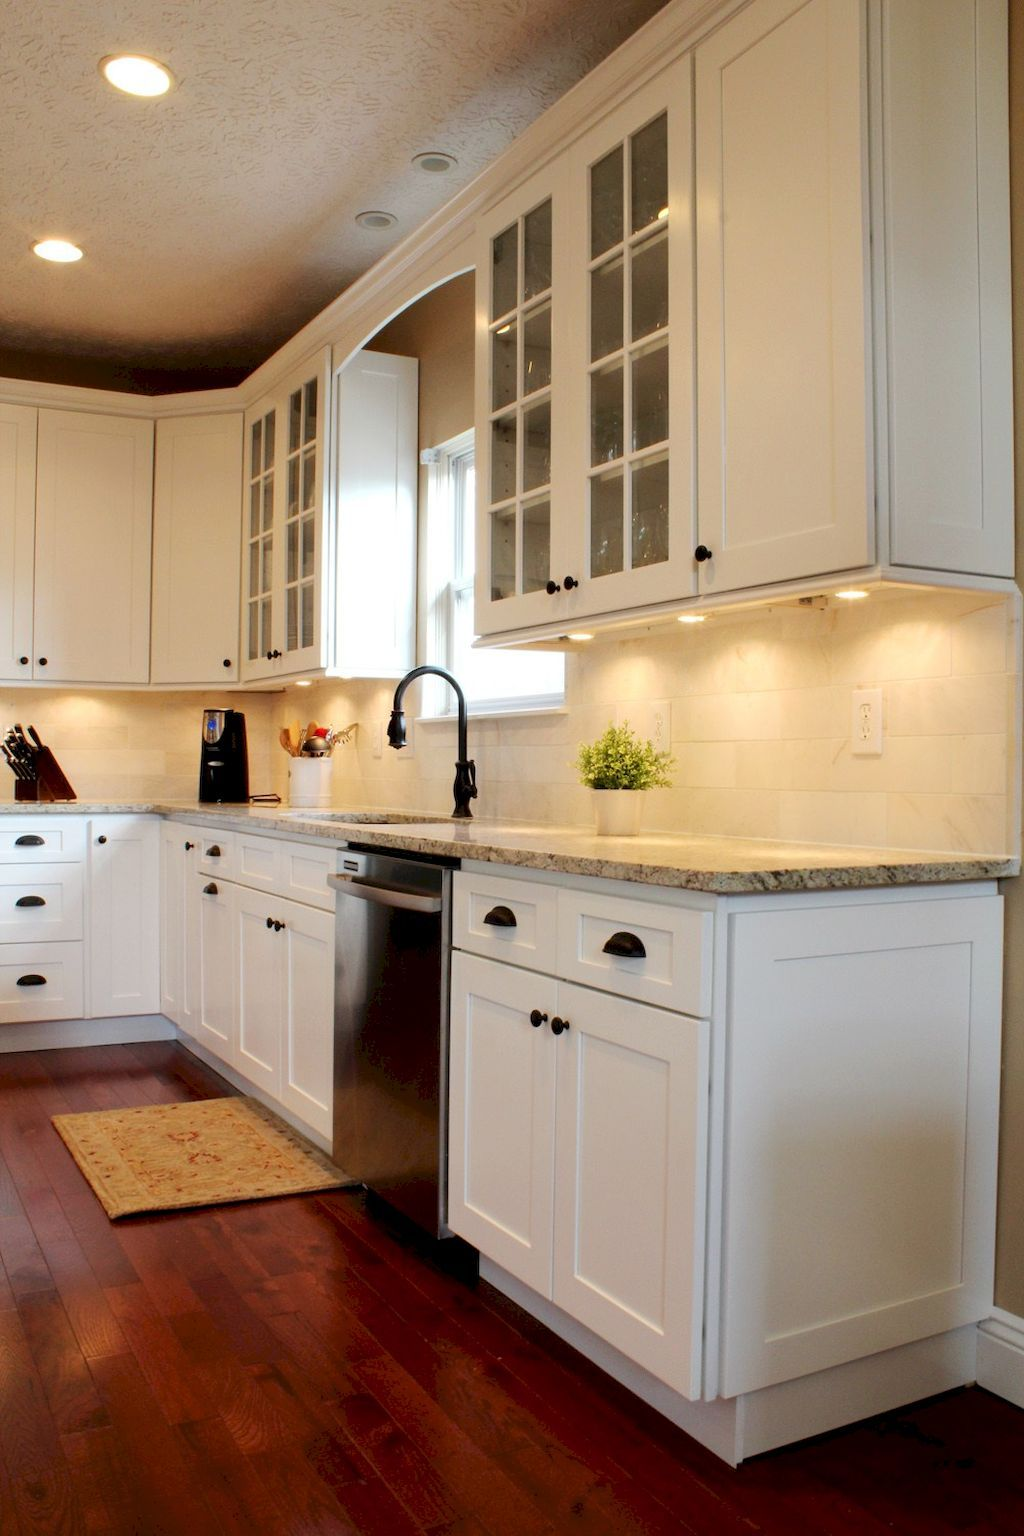 20 Fantastic White Shaker Cabinets Kitchen Ideas Shaker Style Kitchen Cabinets White Shaker Kitchen Kitchen Cabinet Styles